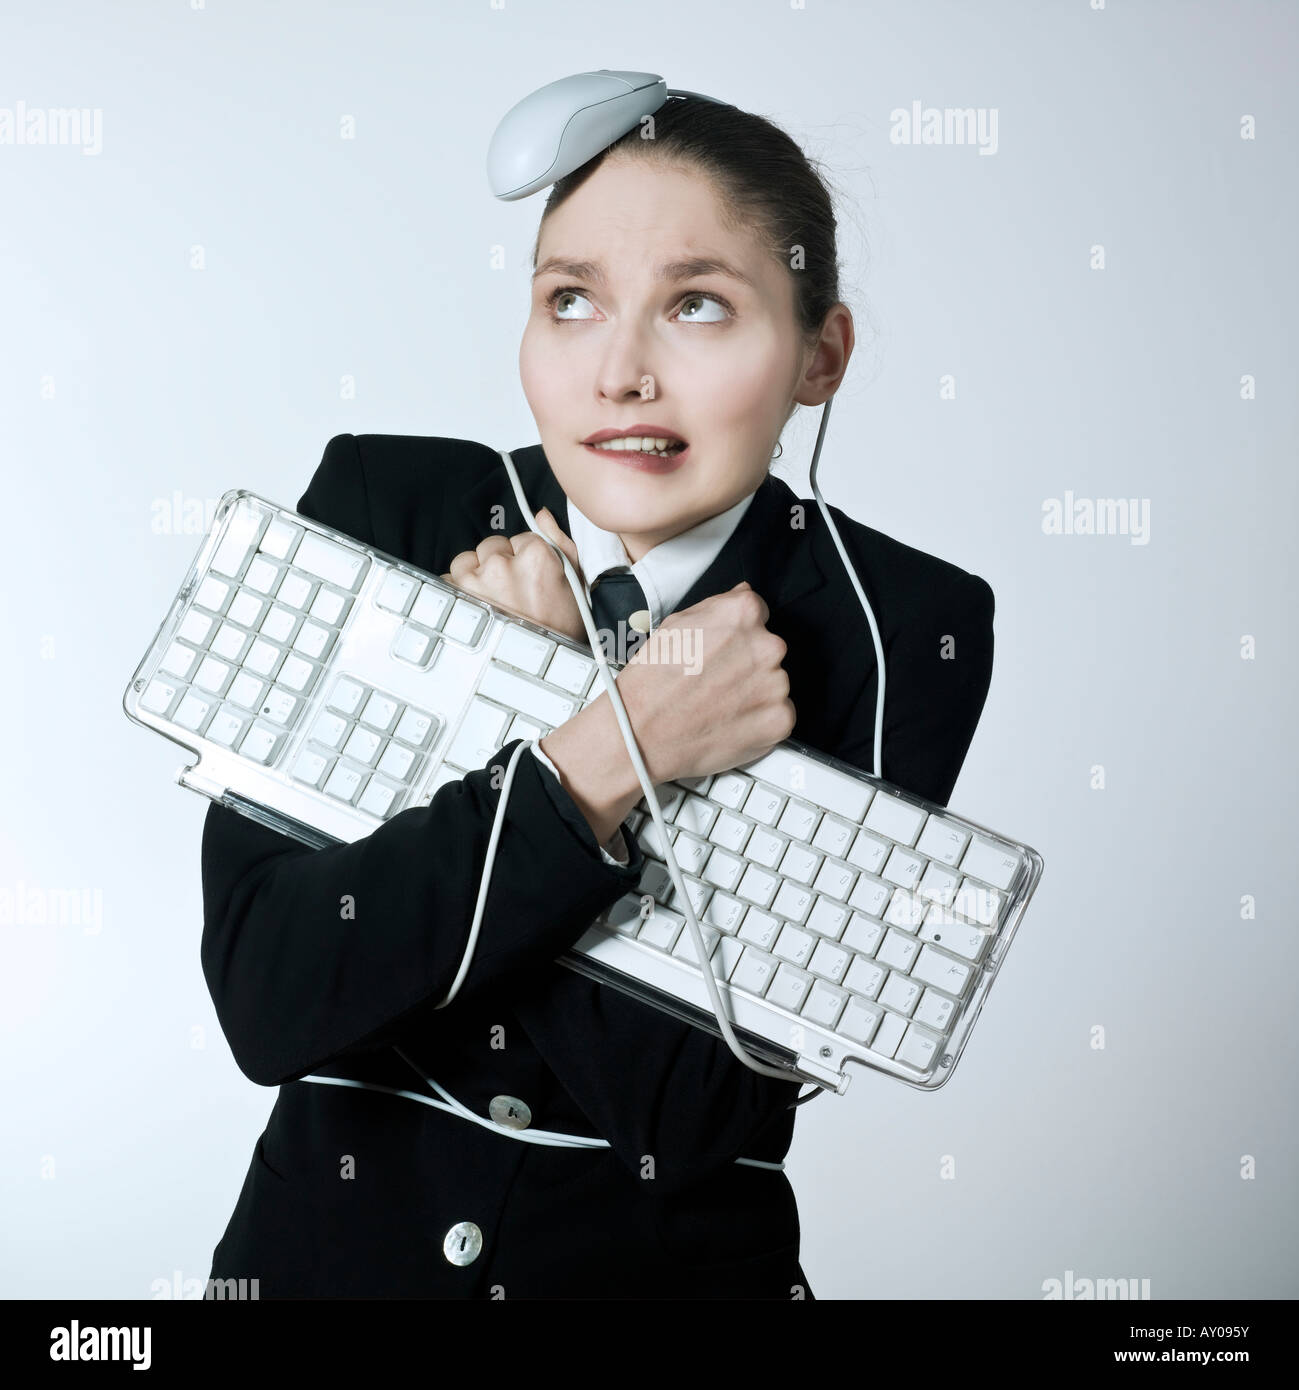 edde2b3ef496 studio shot portrait of a beautiful young woman in a costume suit attached  to a computer keyboard and been attack by a mouse